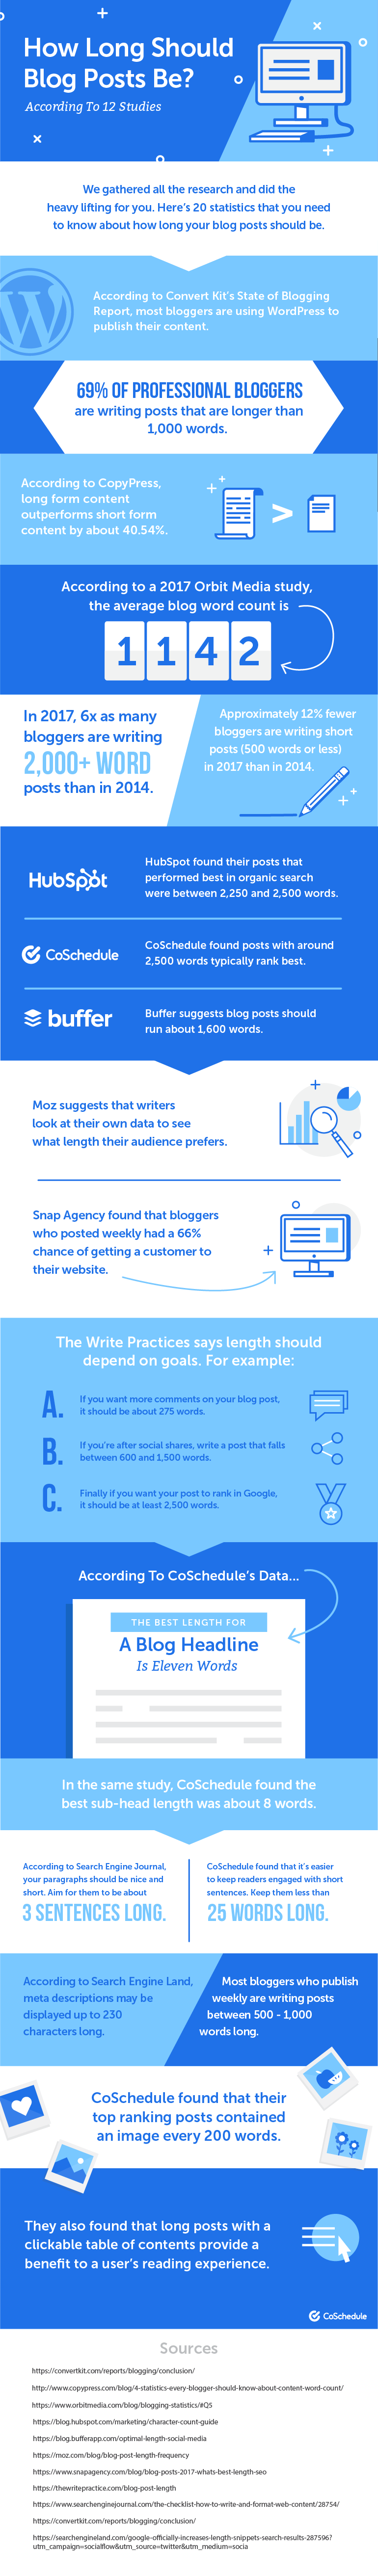 How Long Should Blog Posts Be to Get the Most Traffic and Shares?